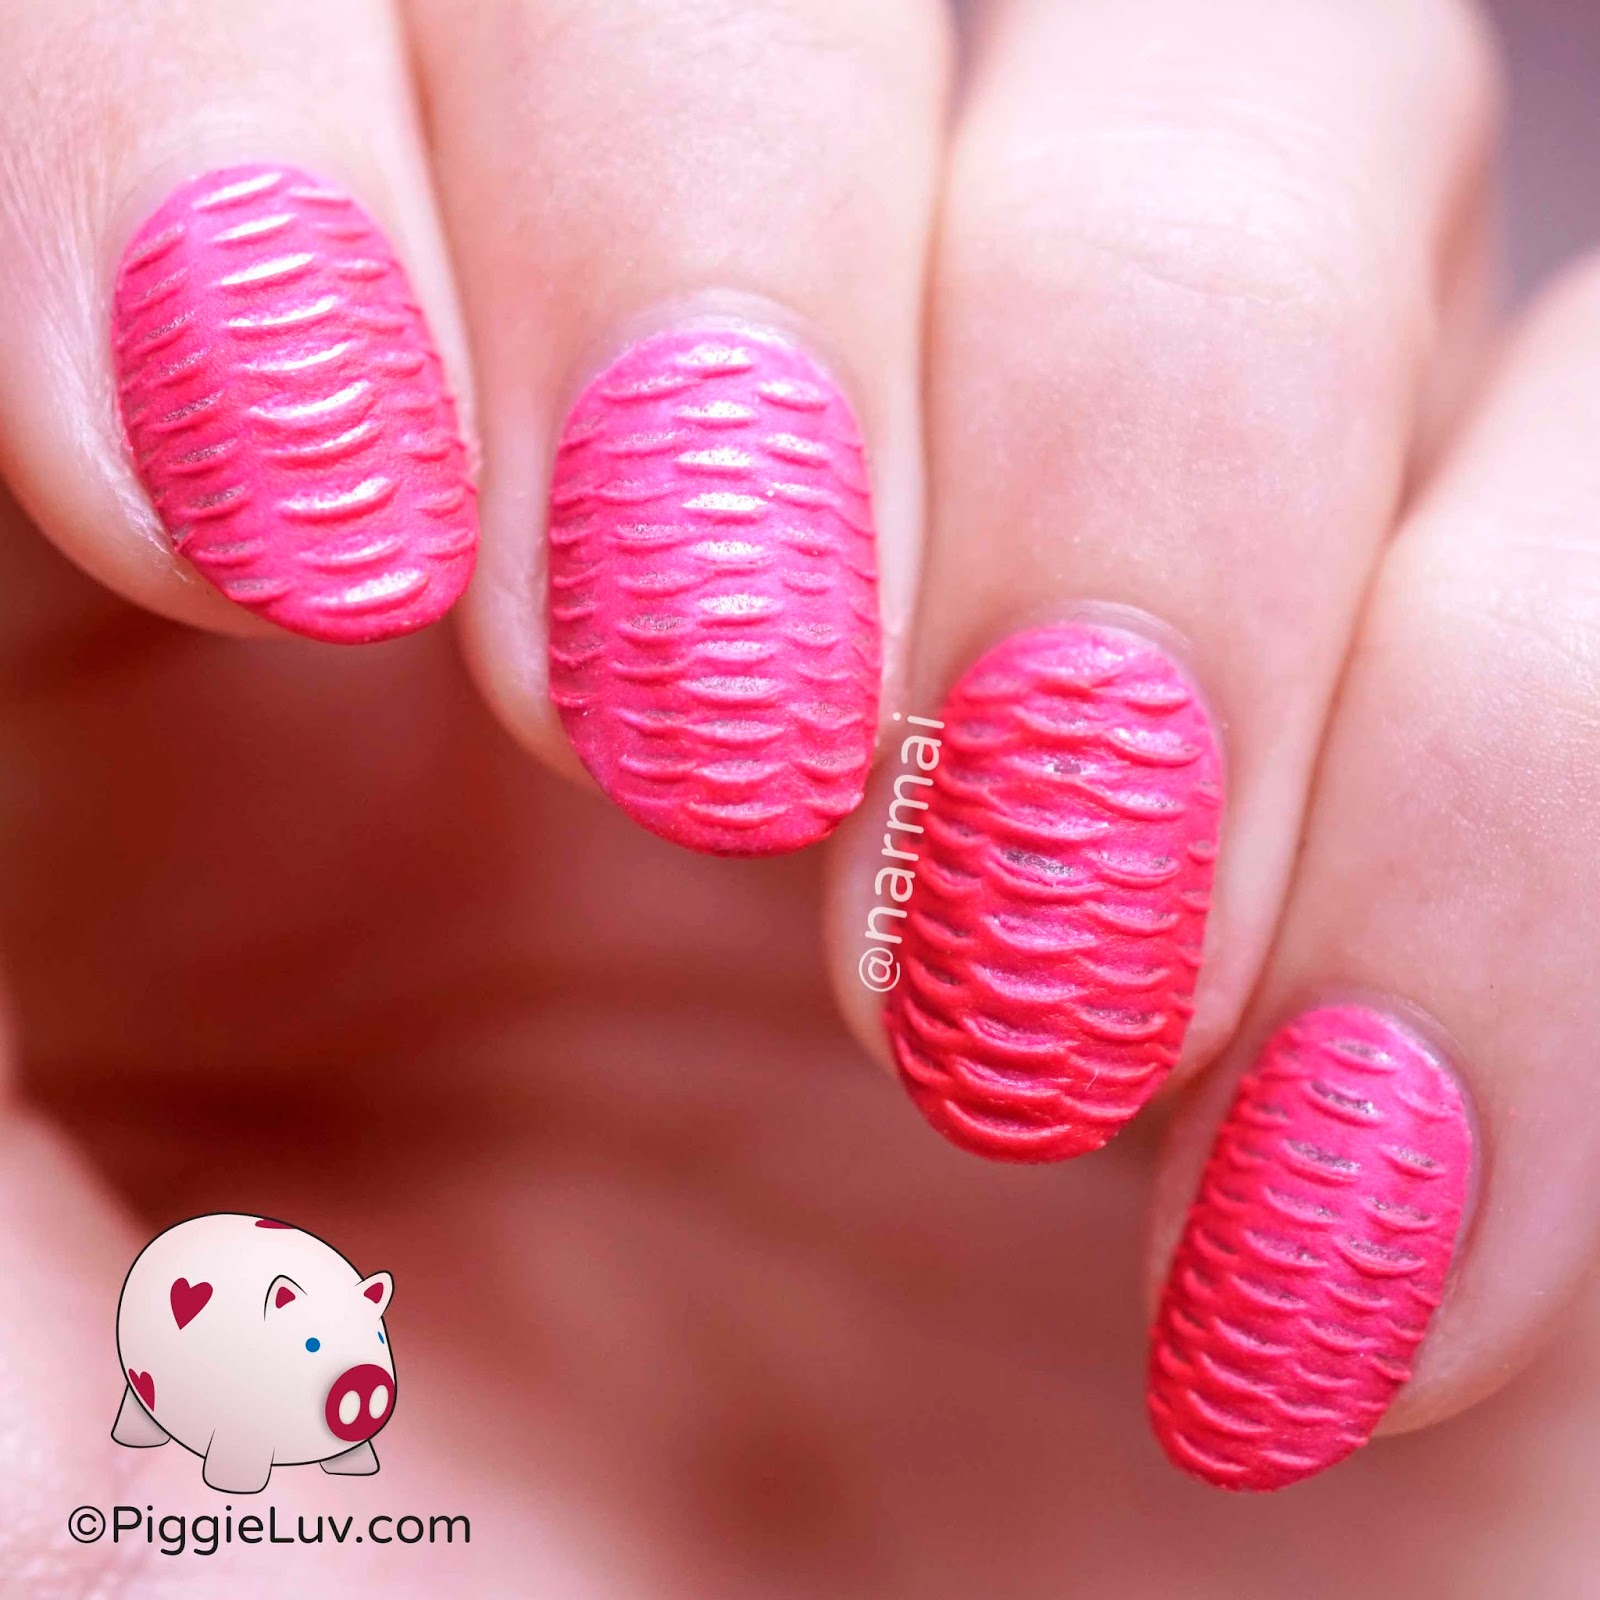 Piggieluv Nail Art Using Silicone Brushes